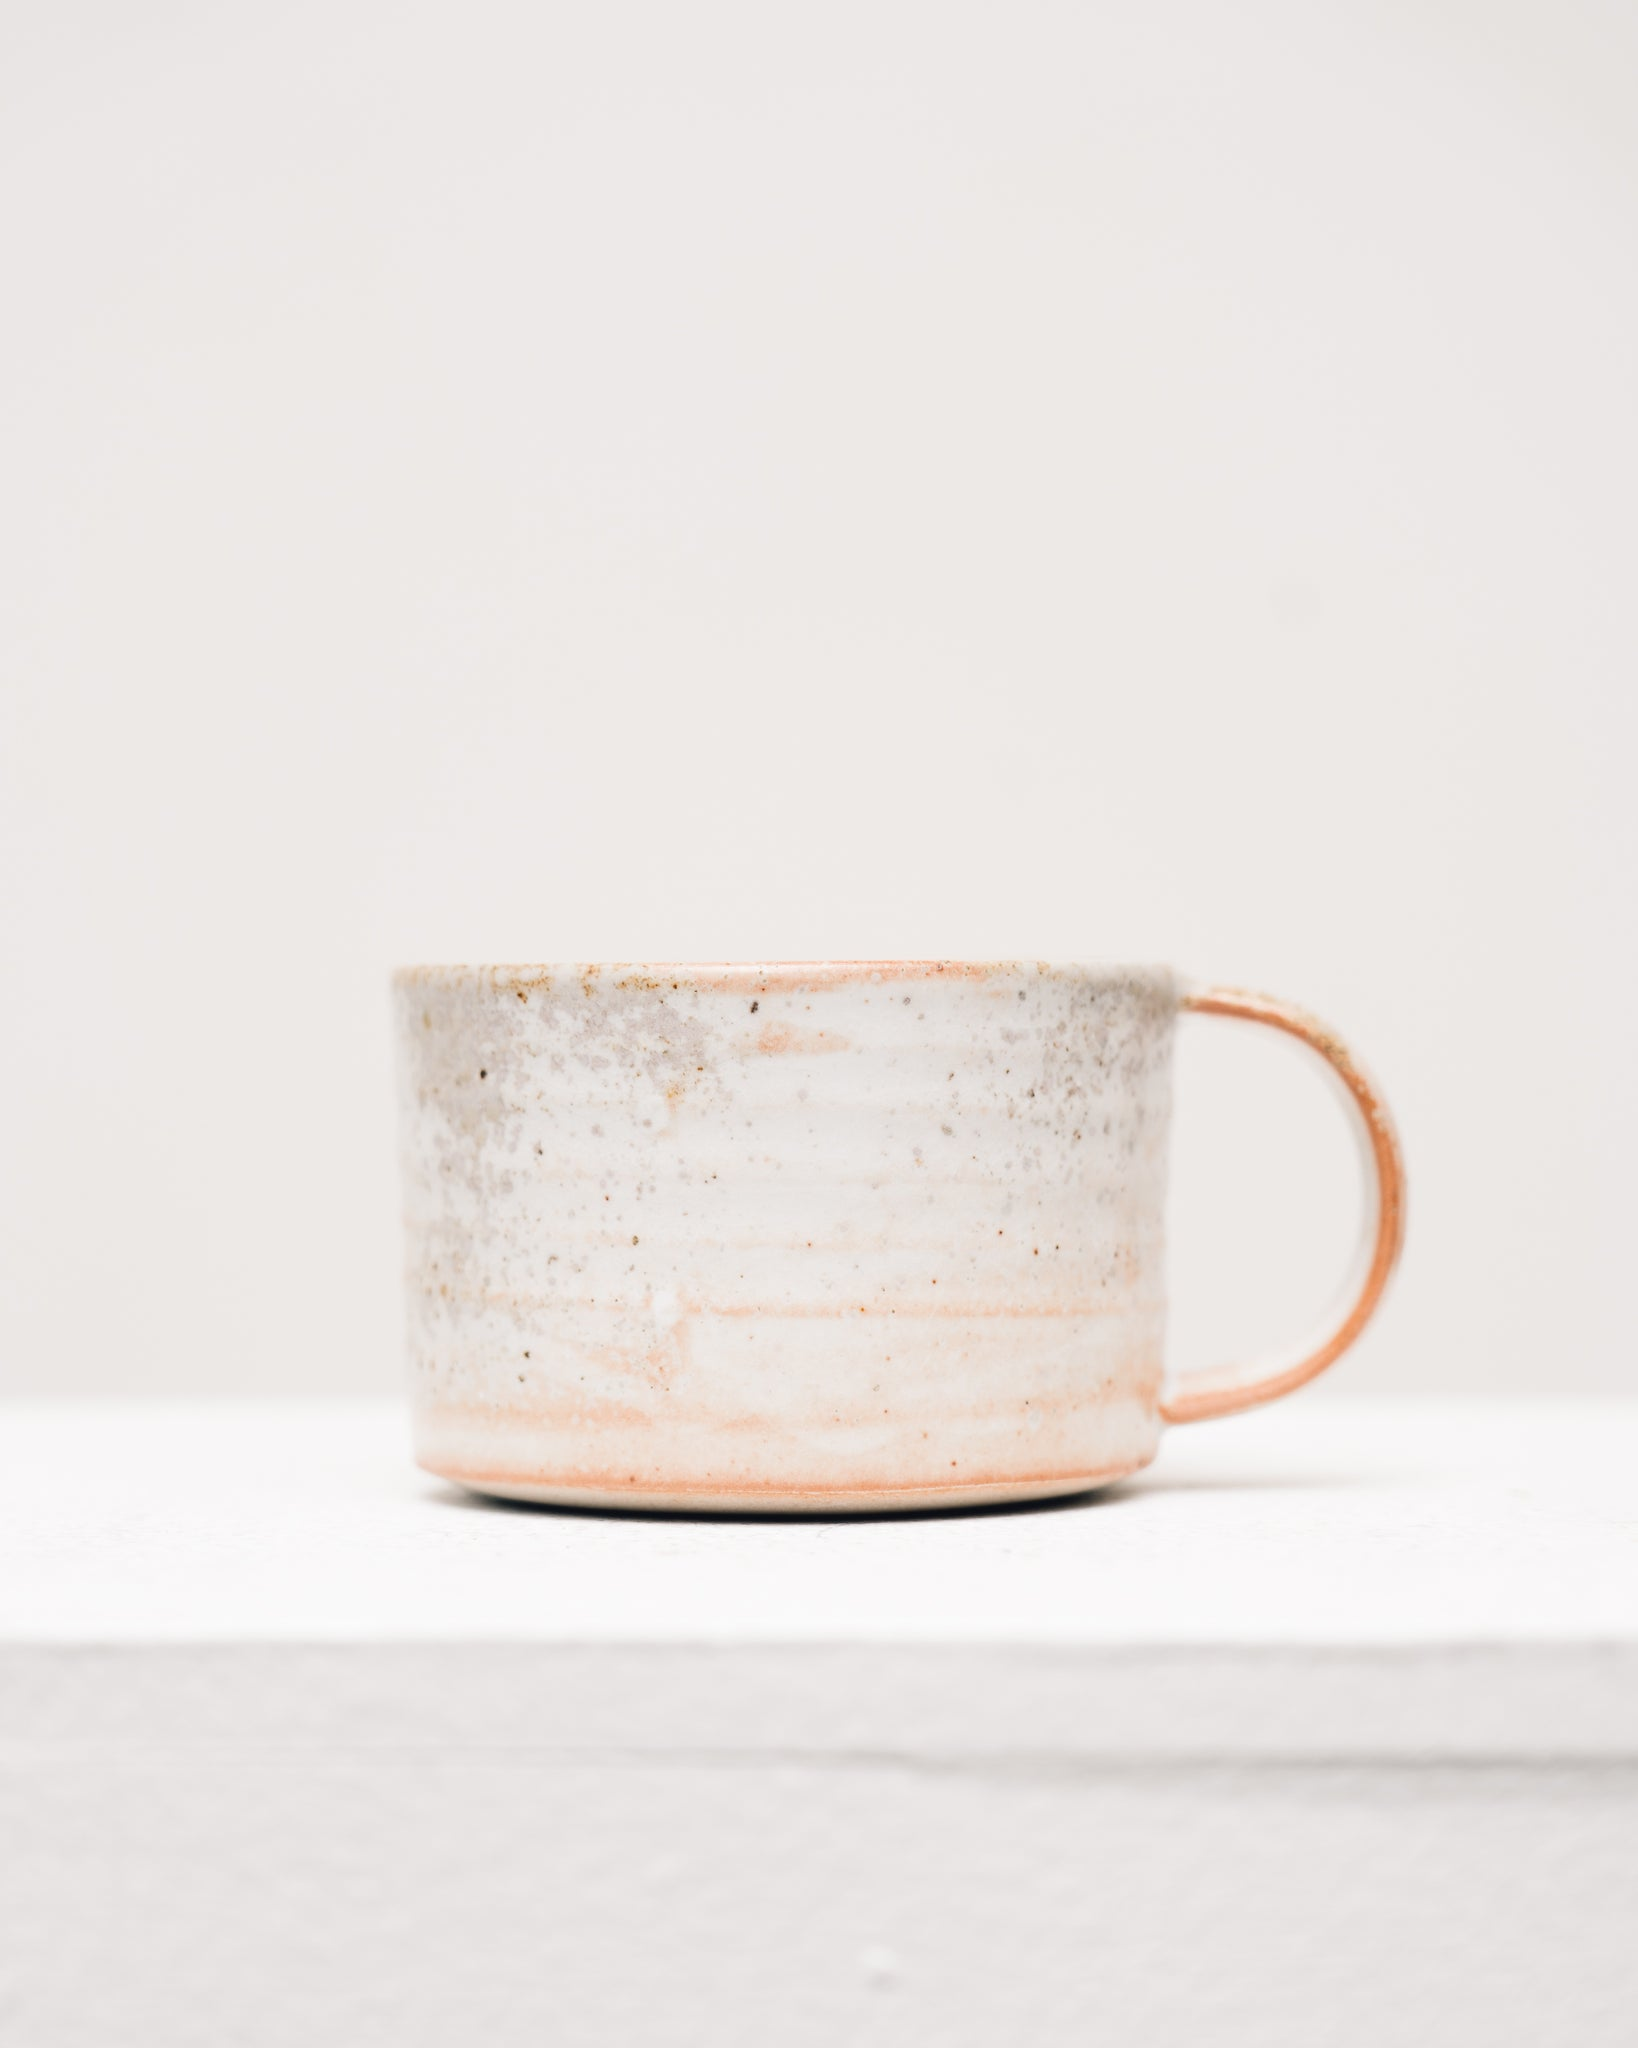 Natasha Alphonse Peach Shino Mug, Reduction Fired